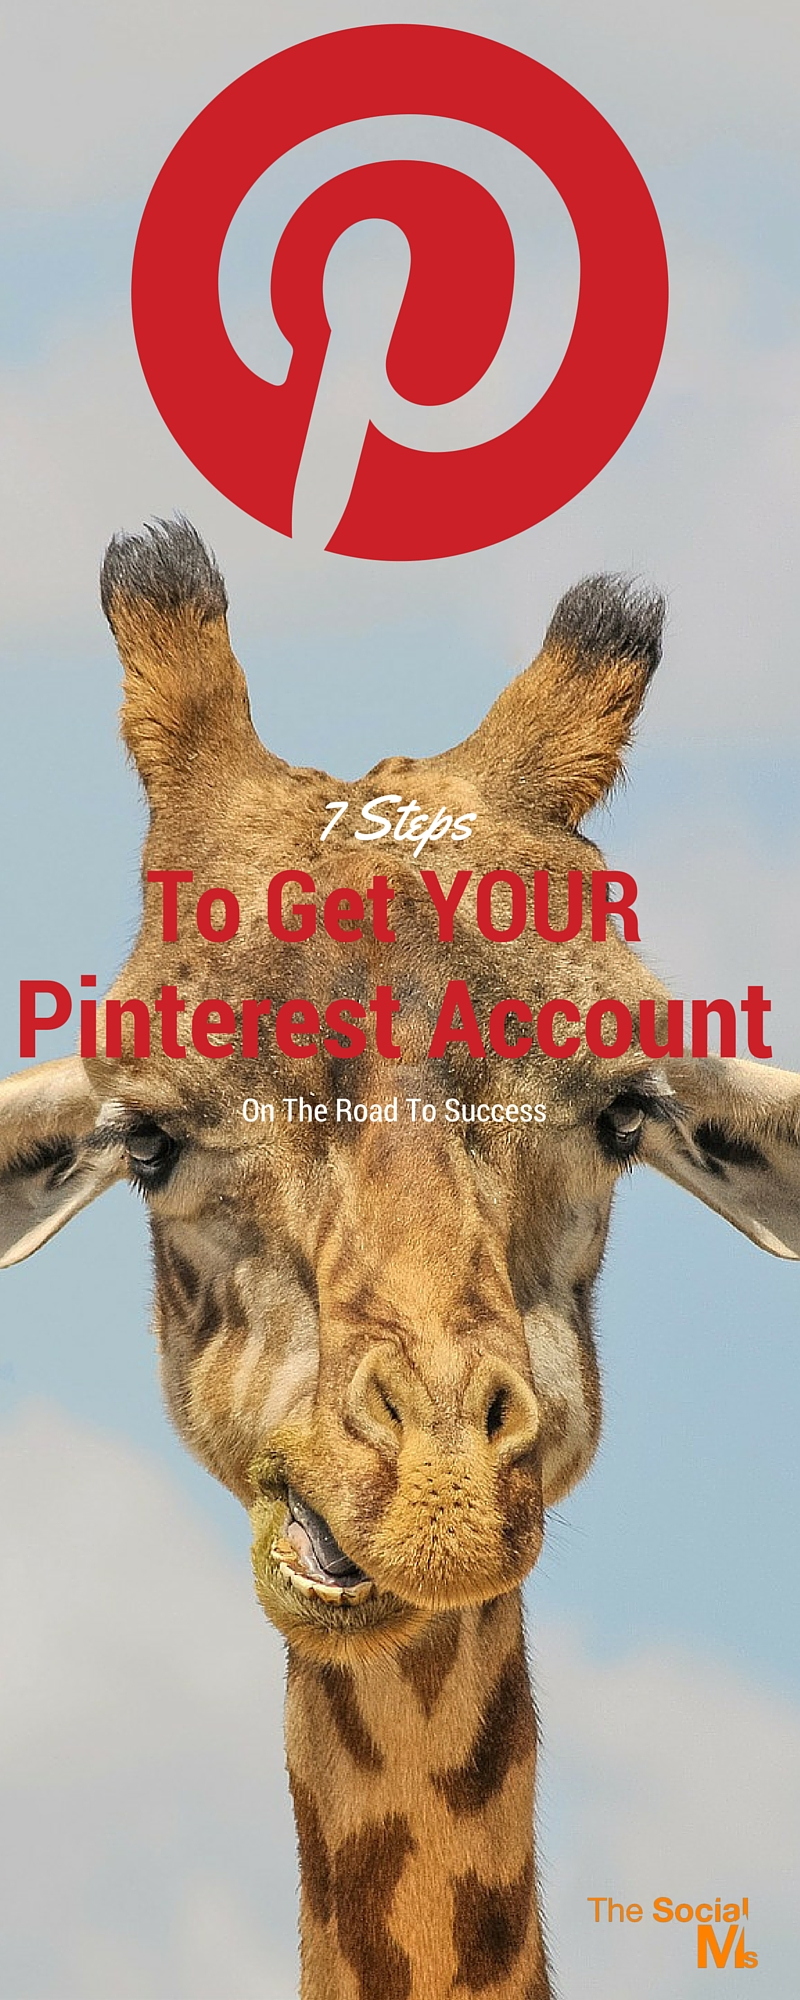 How do you go about Pinterest Promotion to get the most benefit? Here are a few tips to get you there from start to finish.